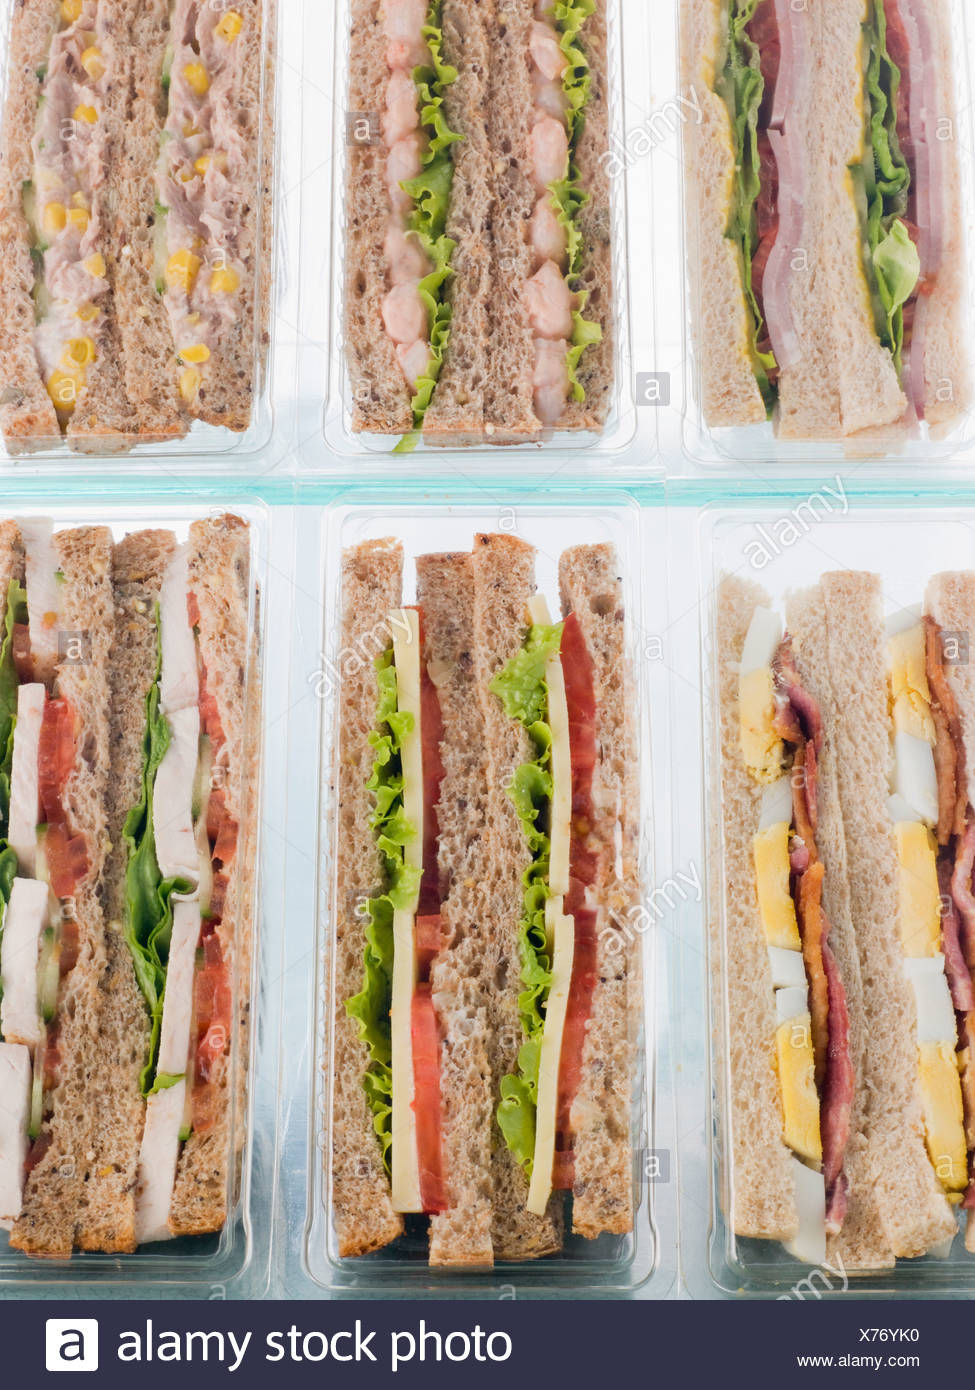 Selection Of Take Away Sandwiches In Plastic Triangles - Stock Image